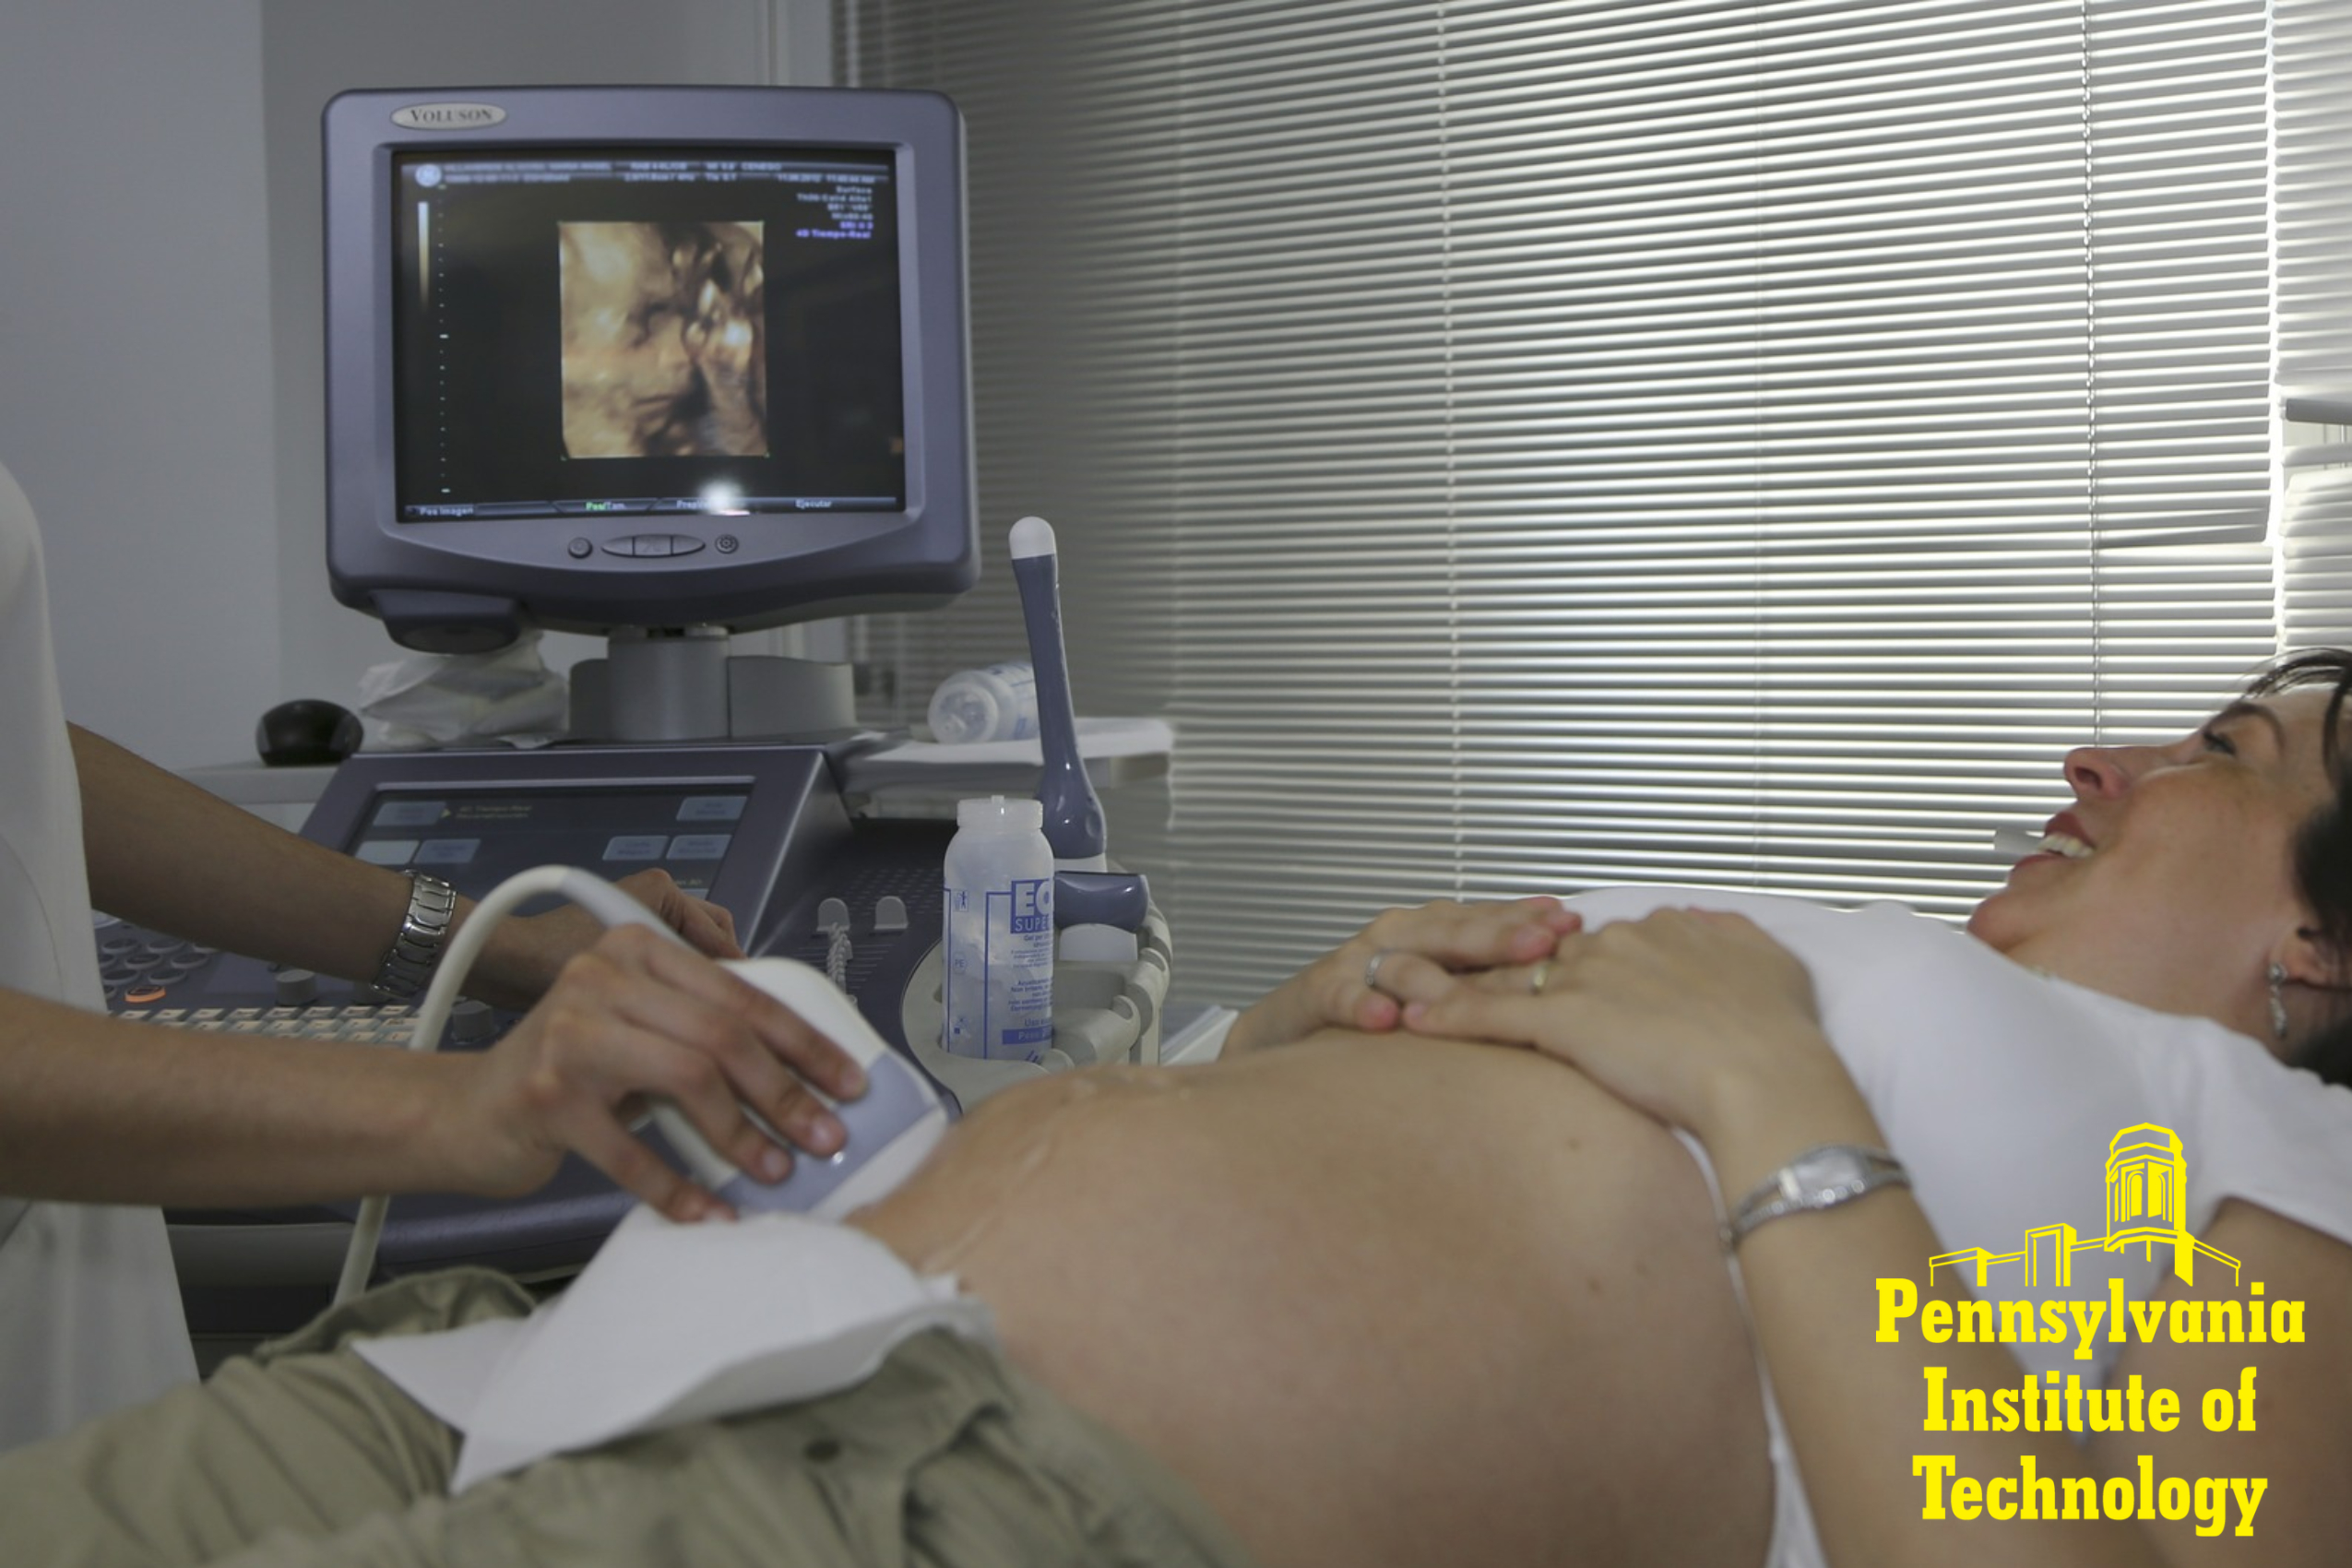 Delaware County's Pennsylvania Institute of Technology (P.I.T.) Awarded $25,000 to Bring Ultrasound Training to Delaware County